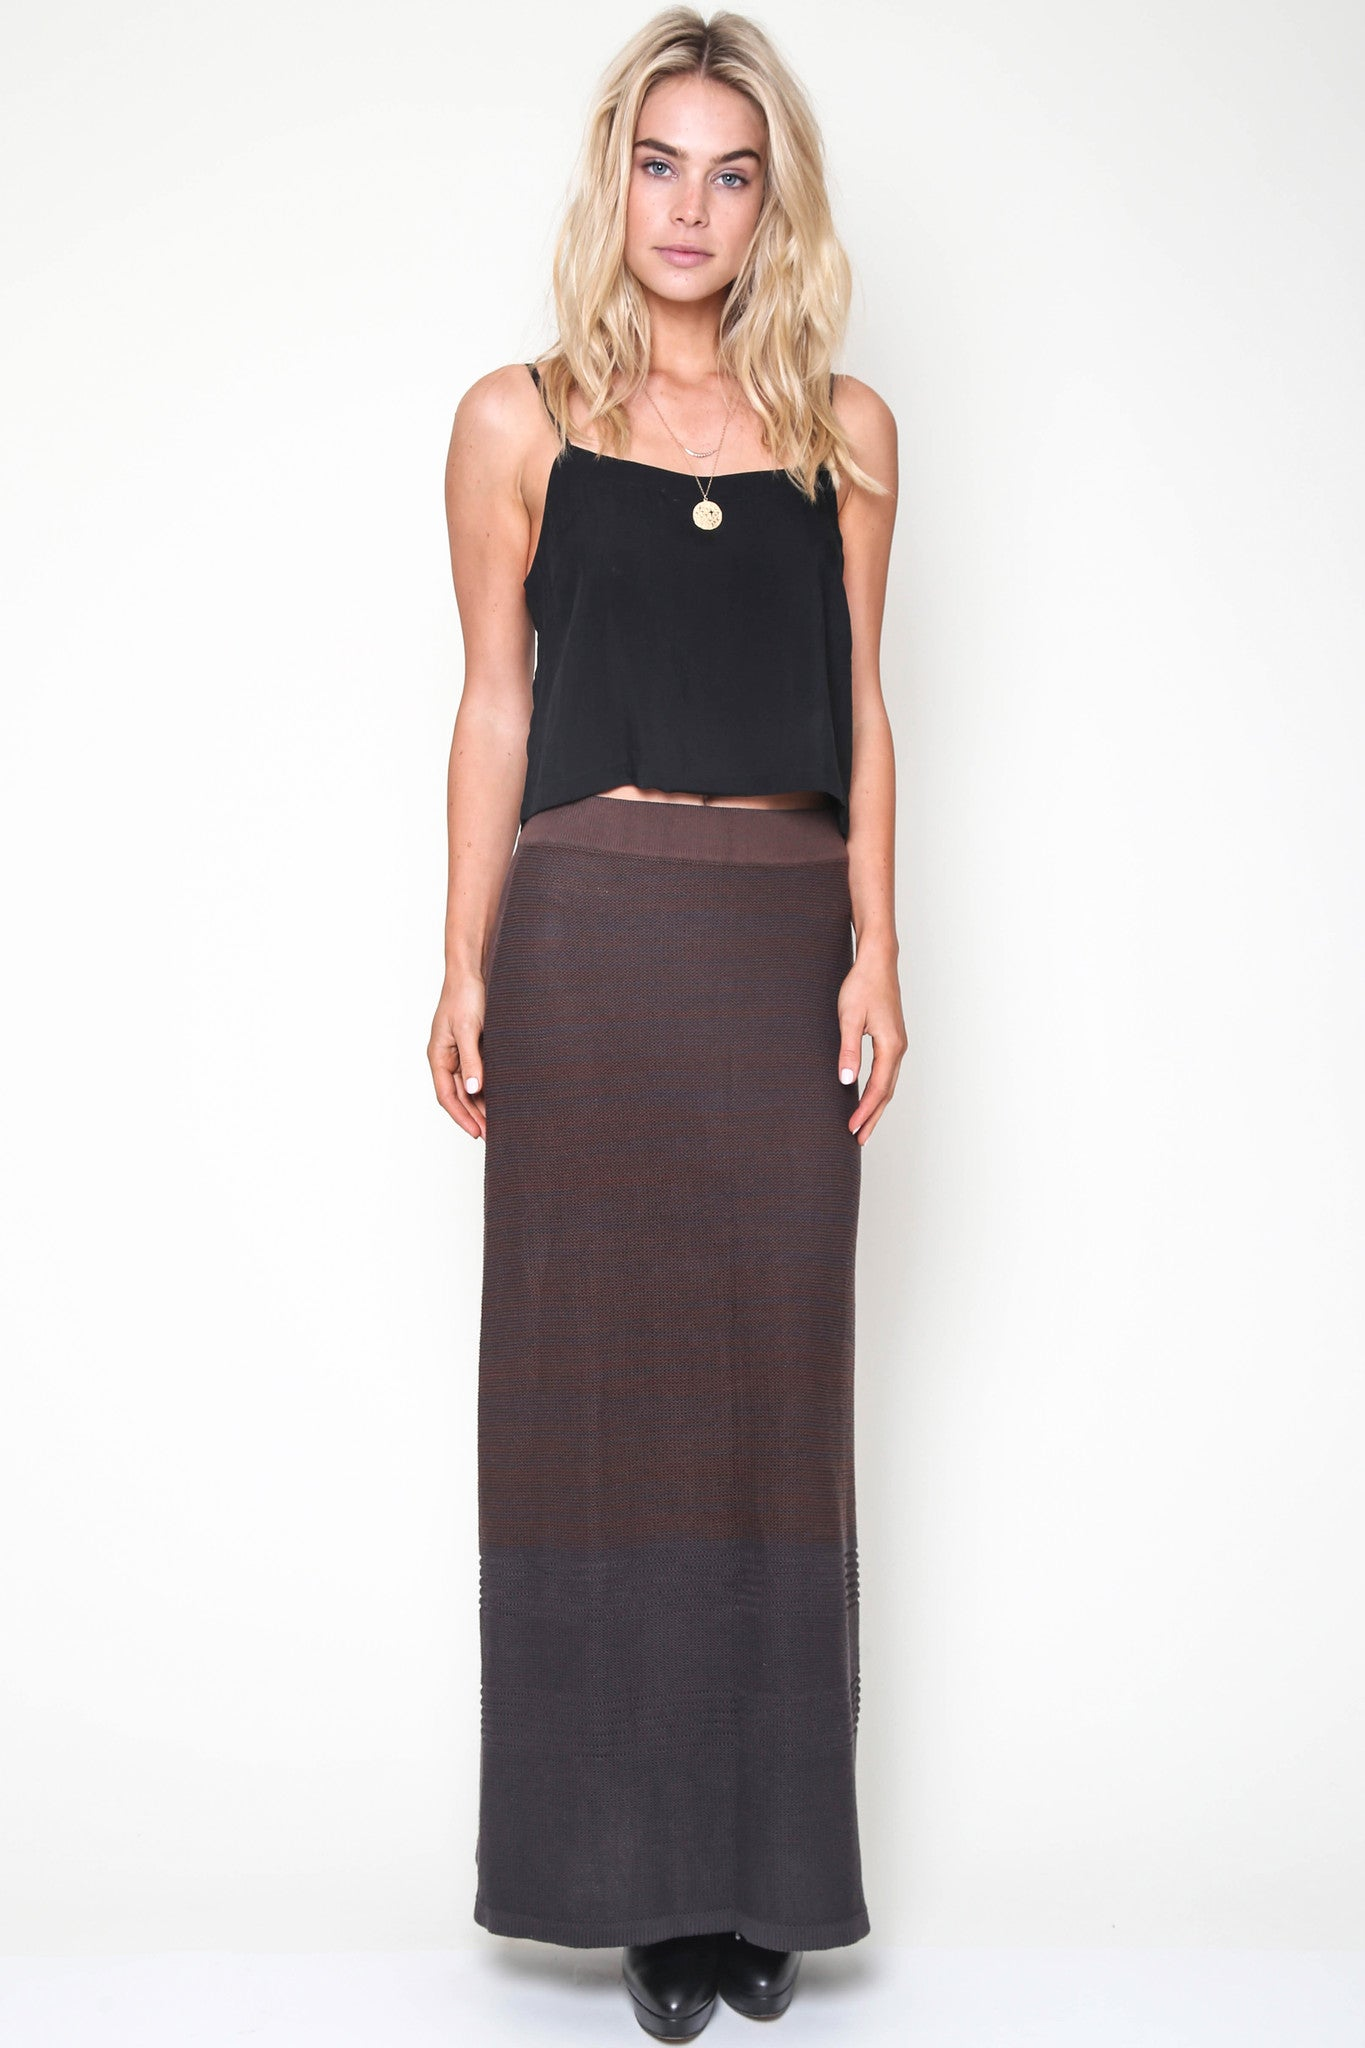 Felix Knit Skirt in Indio